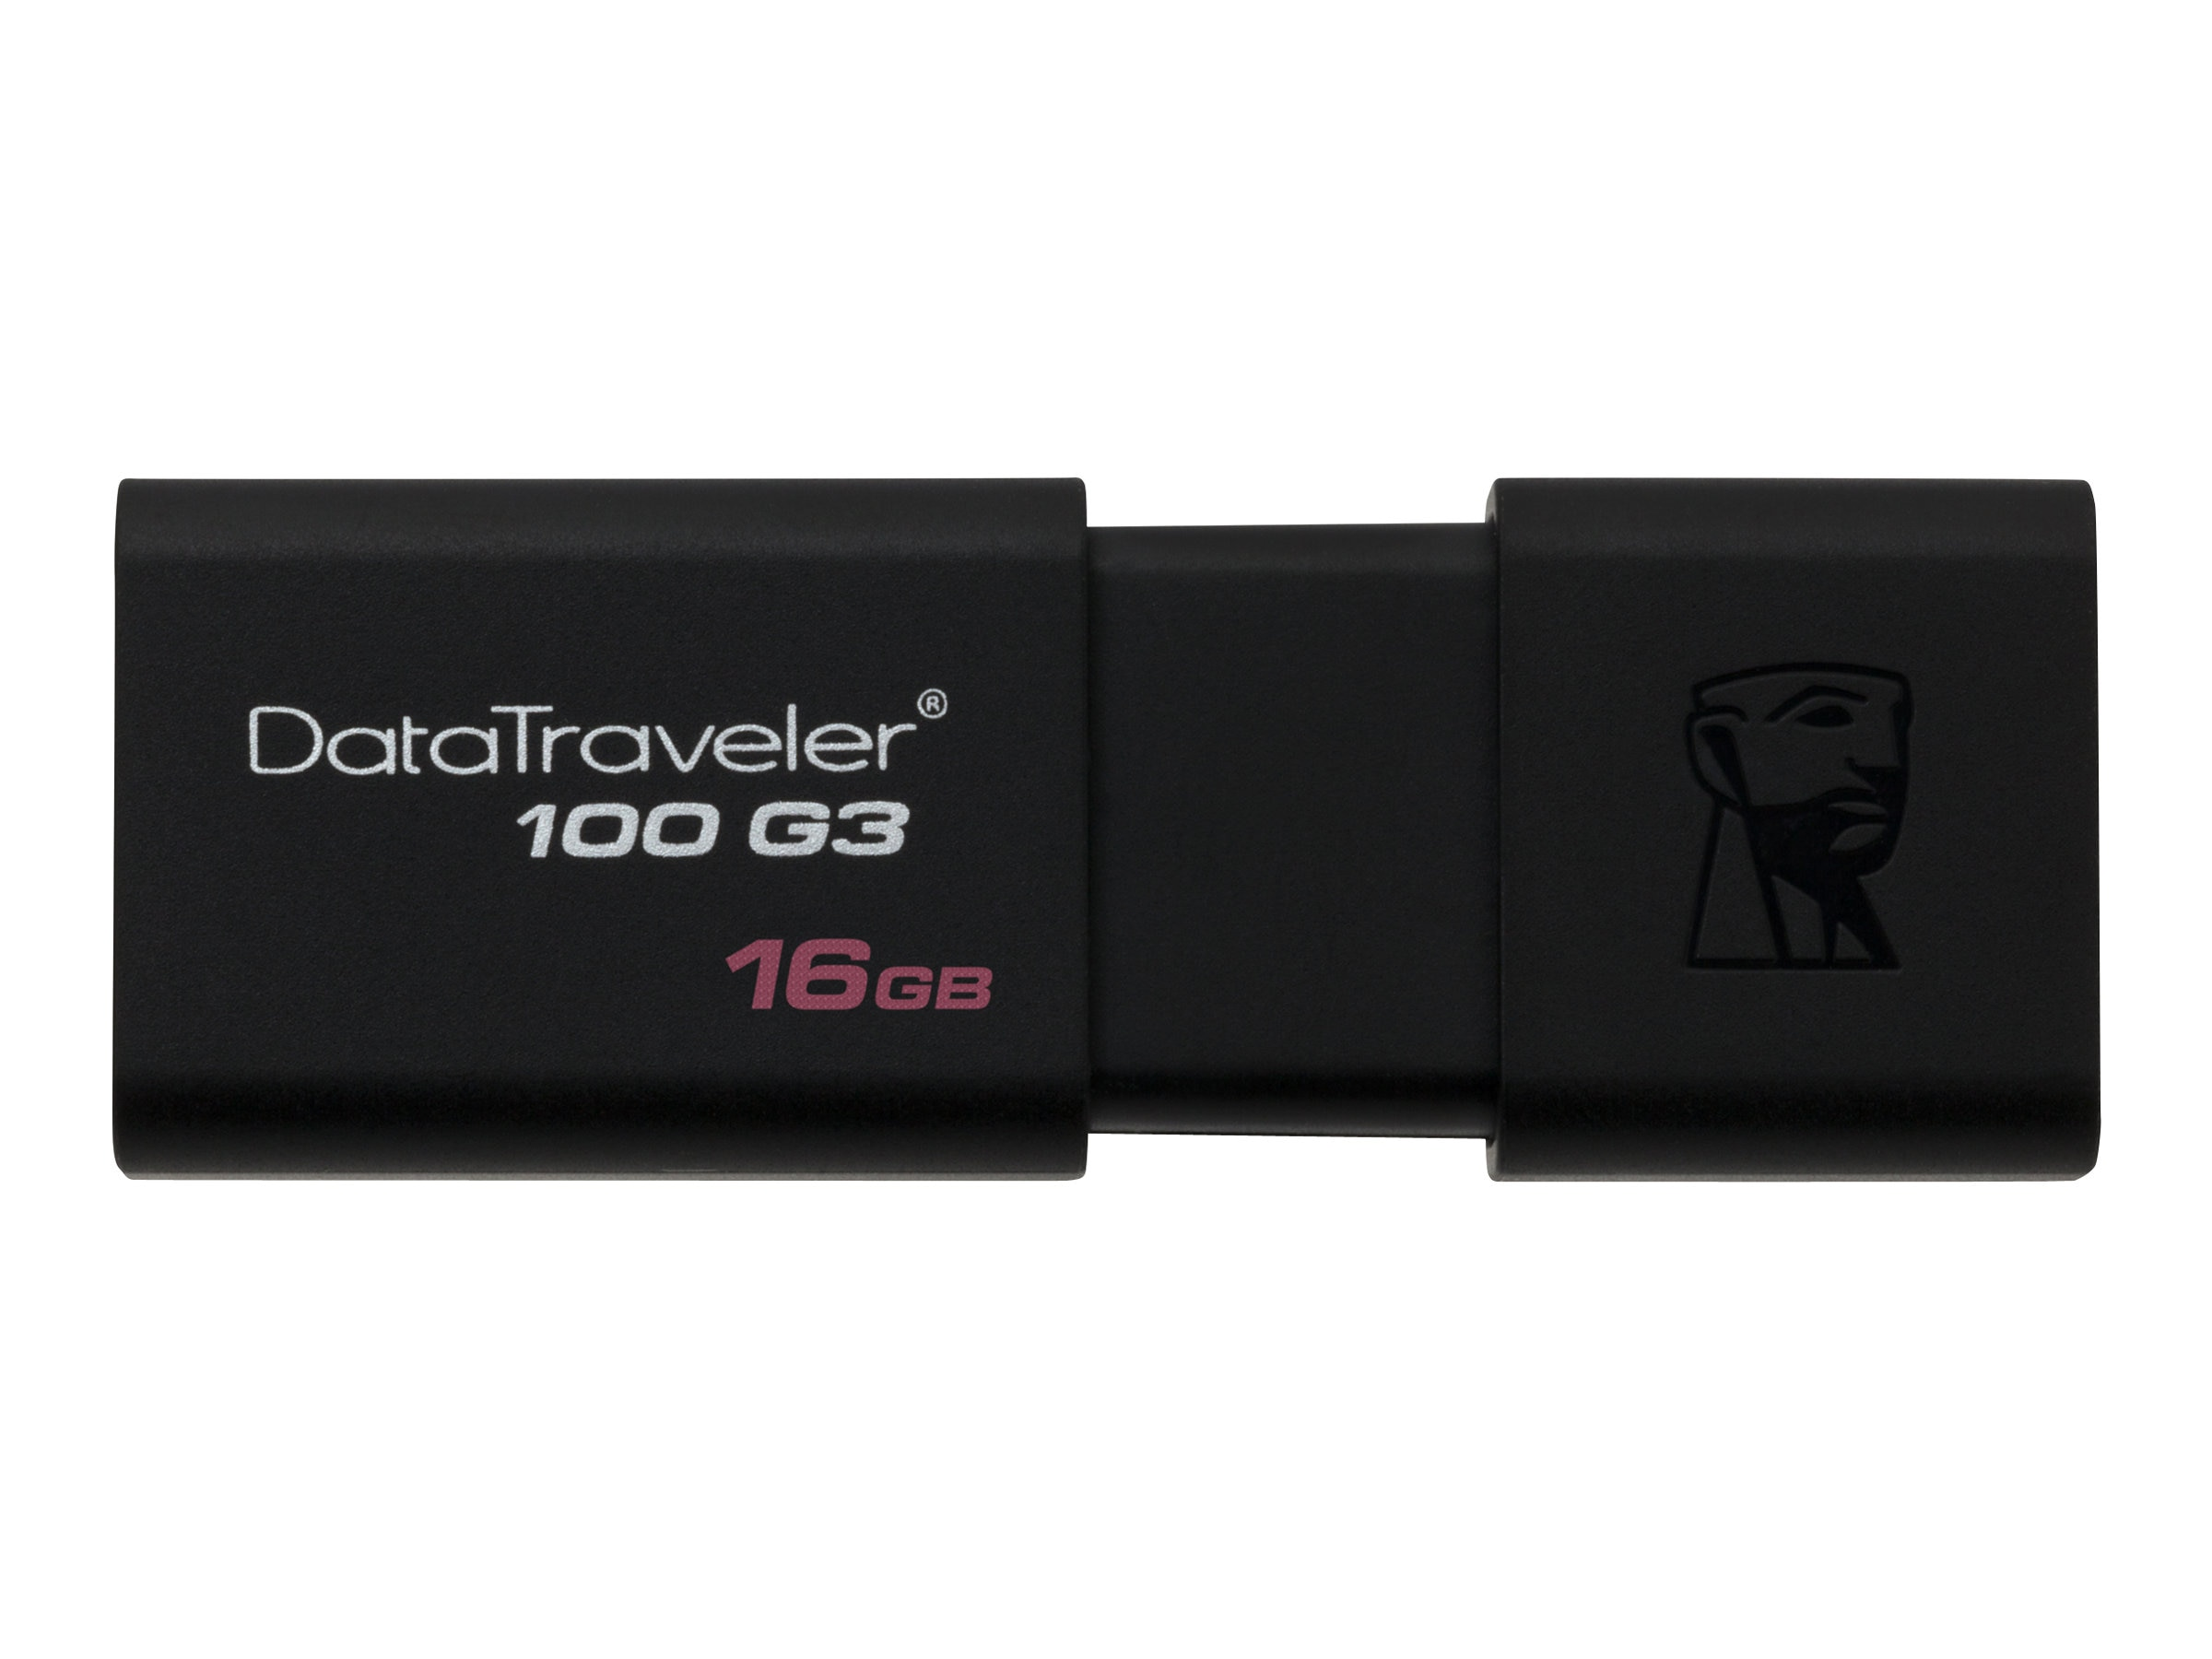 Kingston DT100G3/16GB Image 1